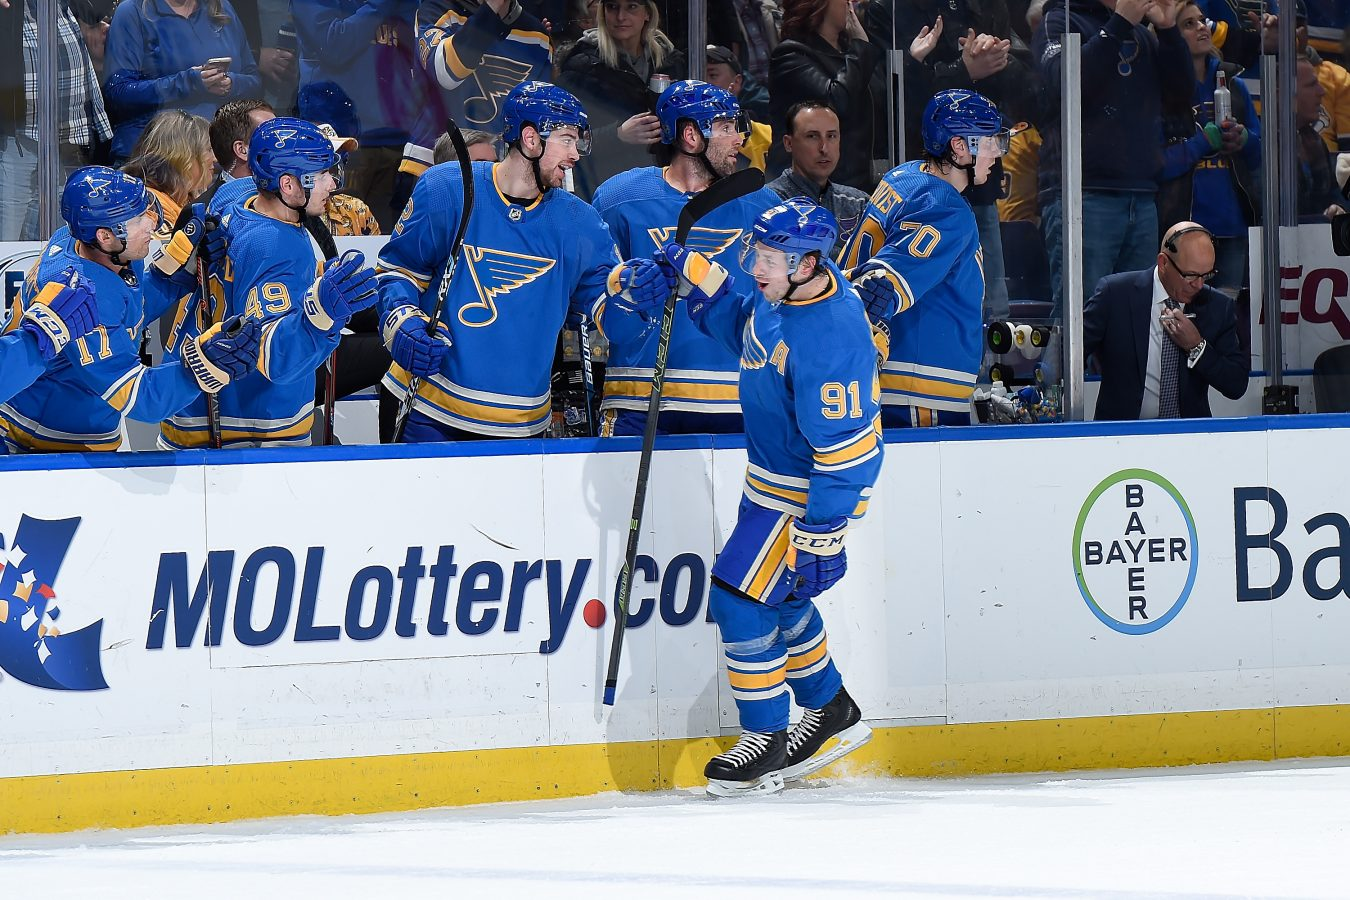 The Blues Are The Hottest Team In The New Year Here S Why The